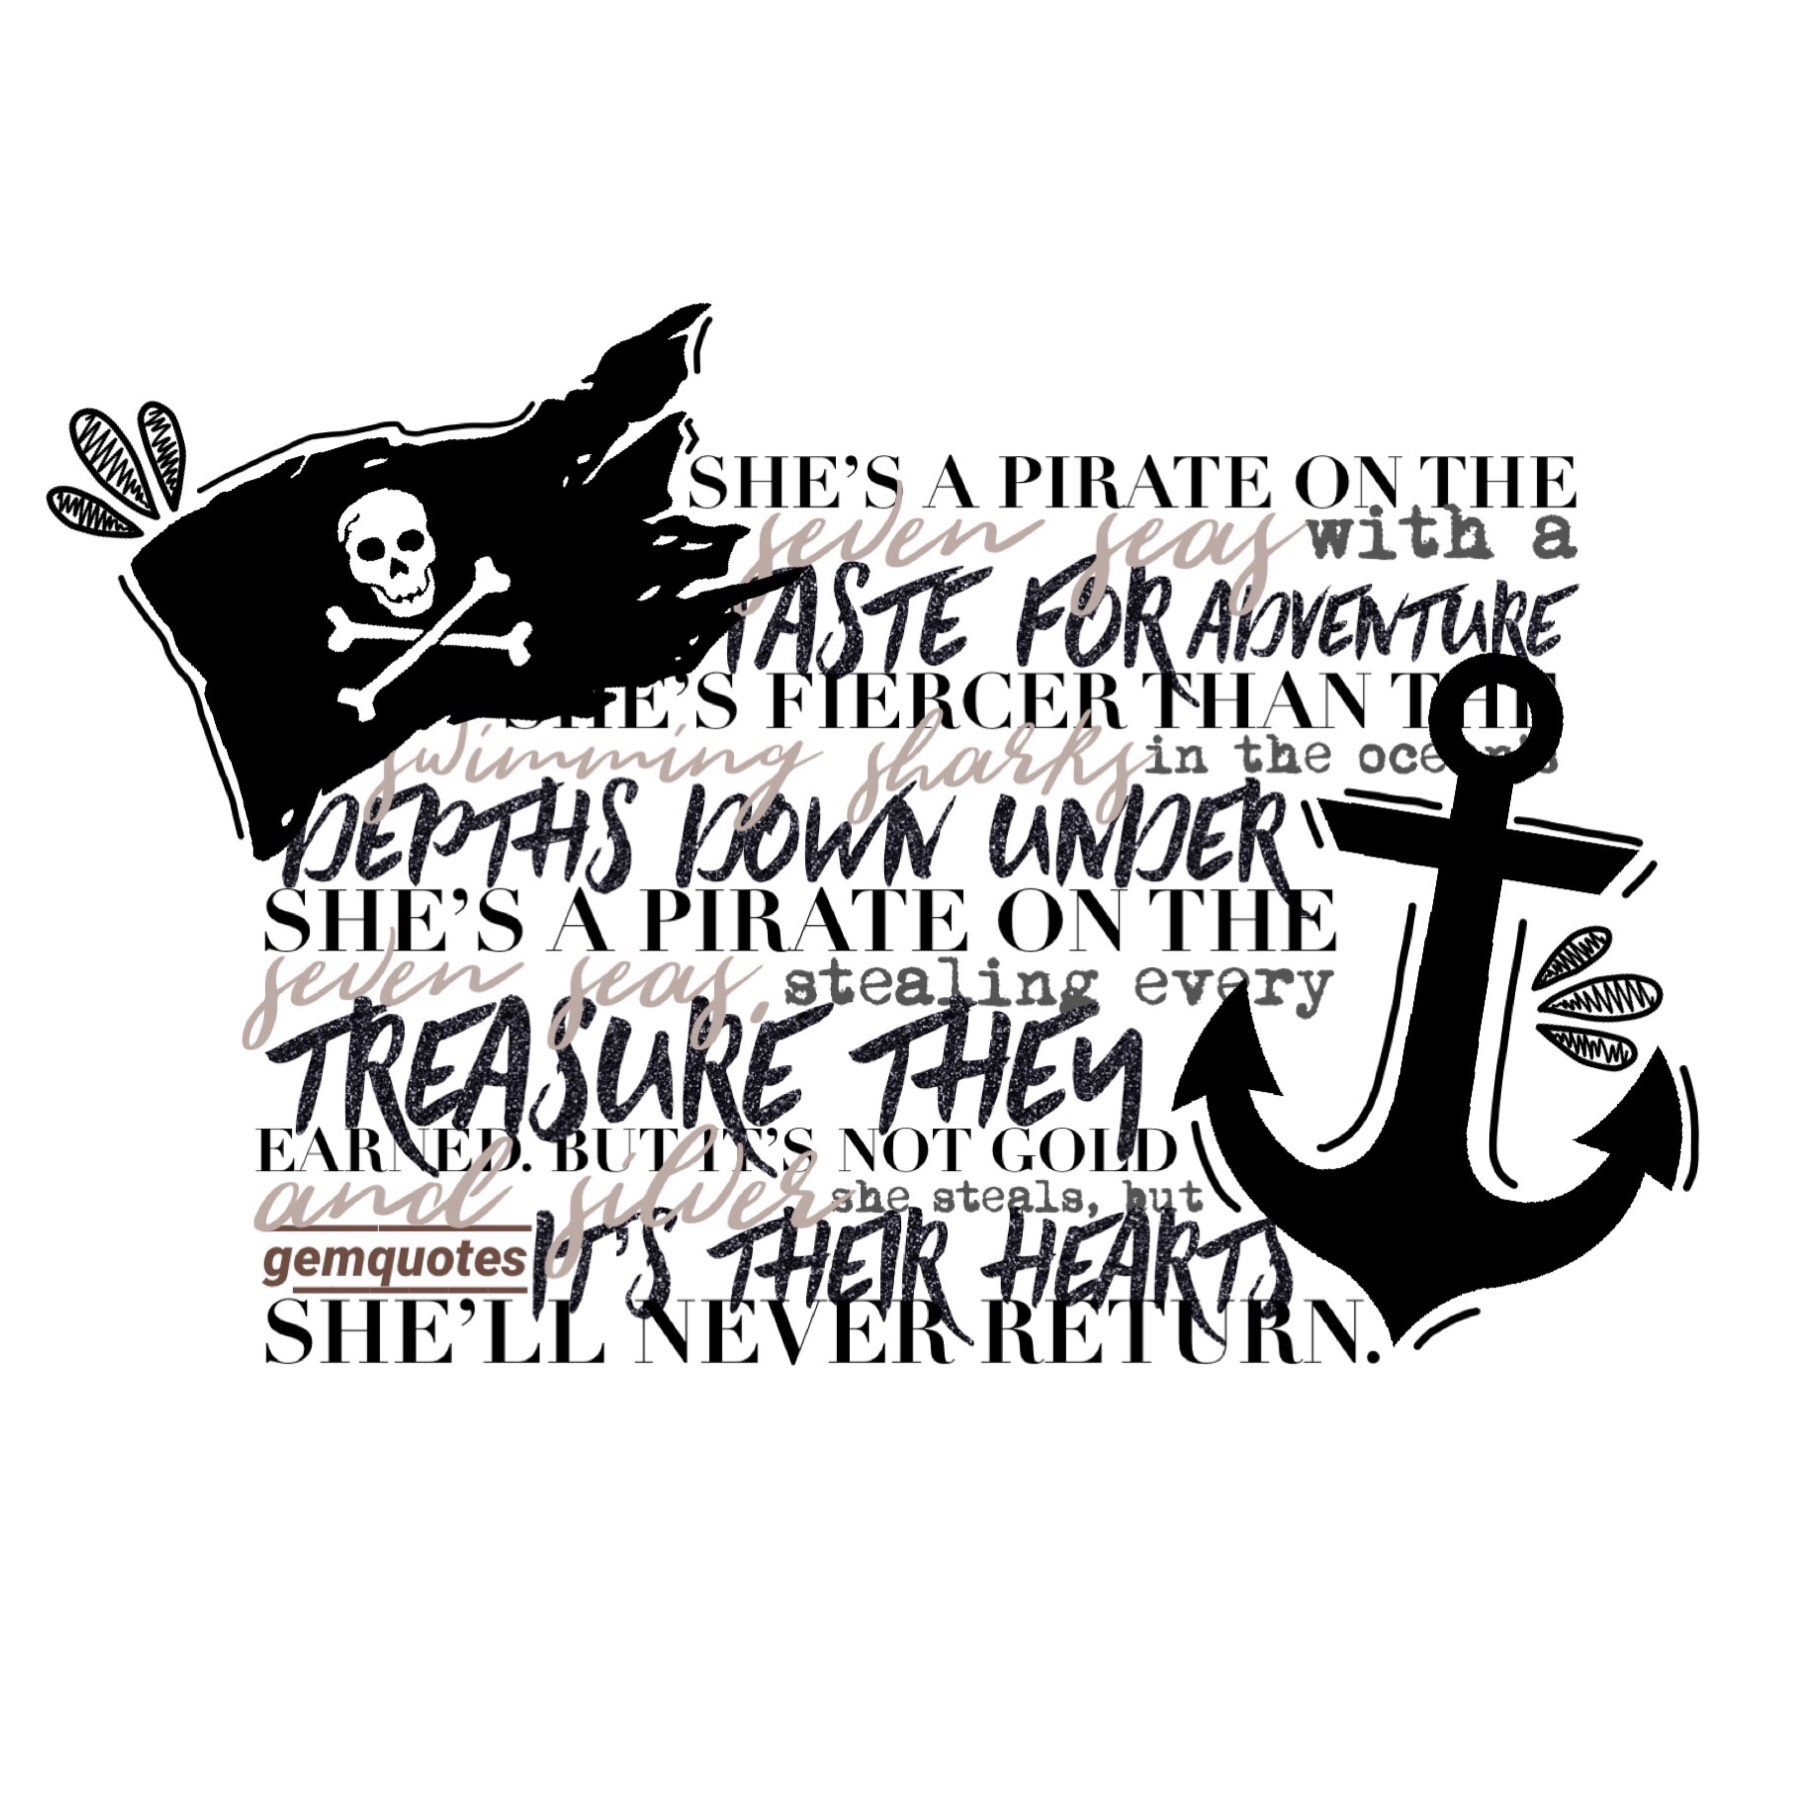 """""""⚓️tap⚓️"""" Poem by me :) Hope u guys are well! Listening to """"Secrets"""" by Mary Lambert and luvin it. I listen to a lot of music if ya couldn't tell😂 QOTD: fav song? AOTD: too many to choose from, but maybe """"Capsize"""" by FRENSHIP. Sending good days~☀️"""